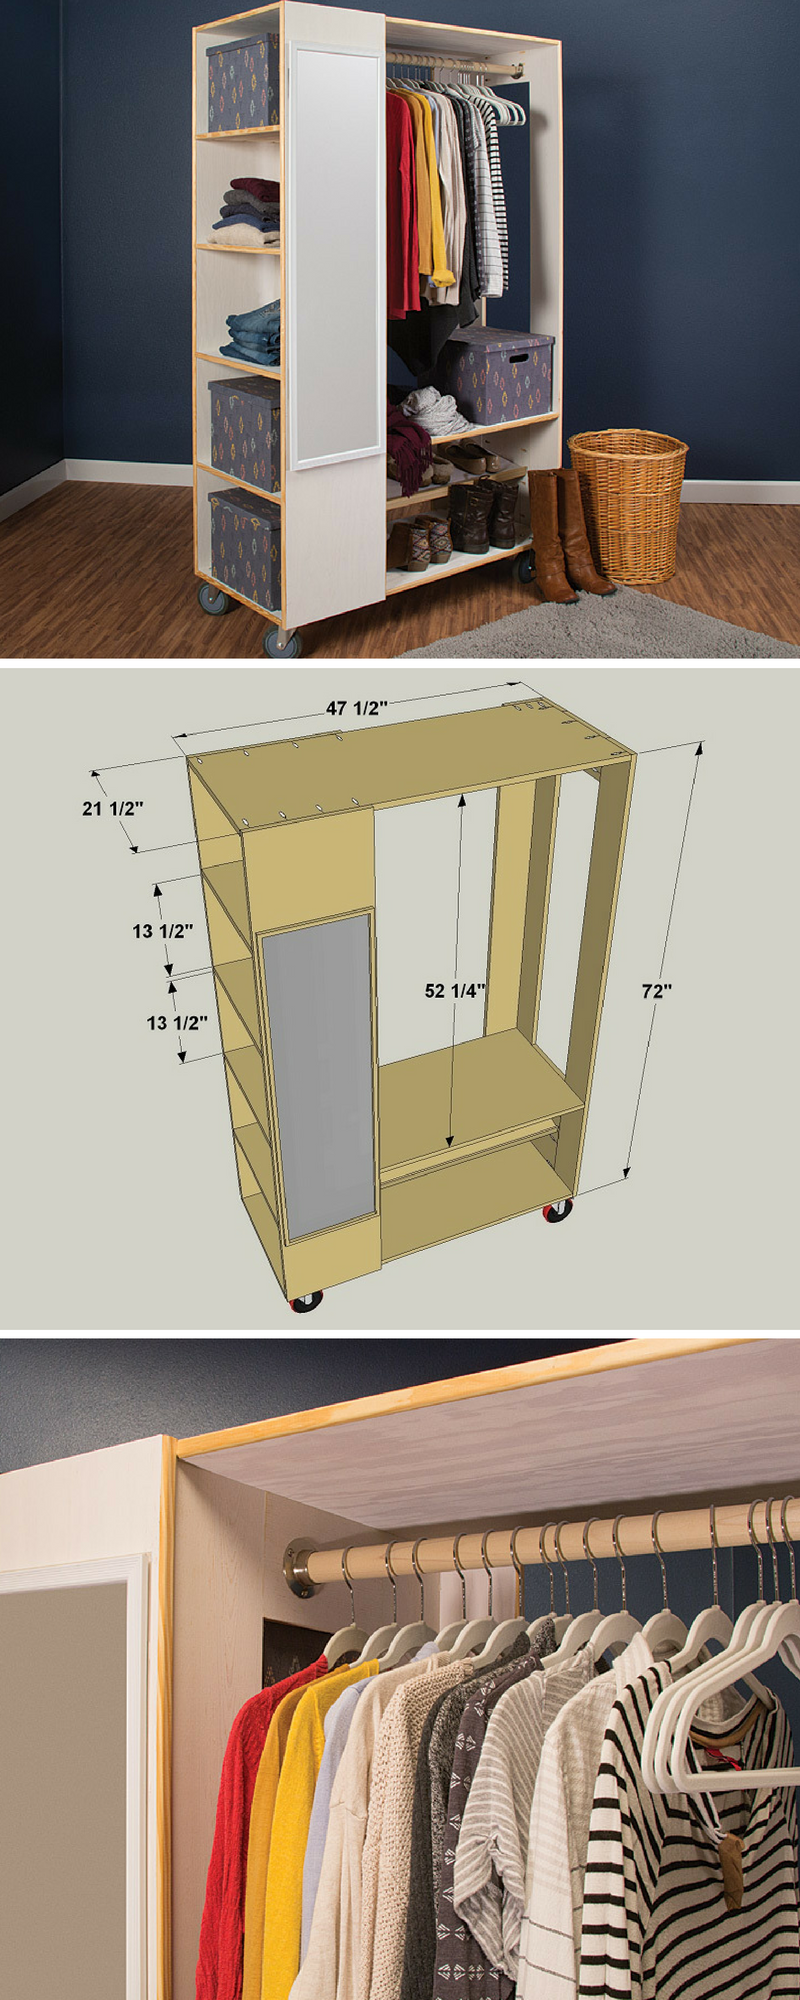 How to Build a Freestanding Closet System Free project